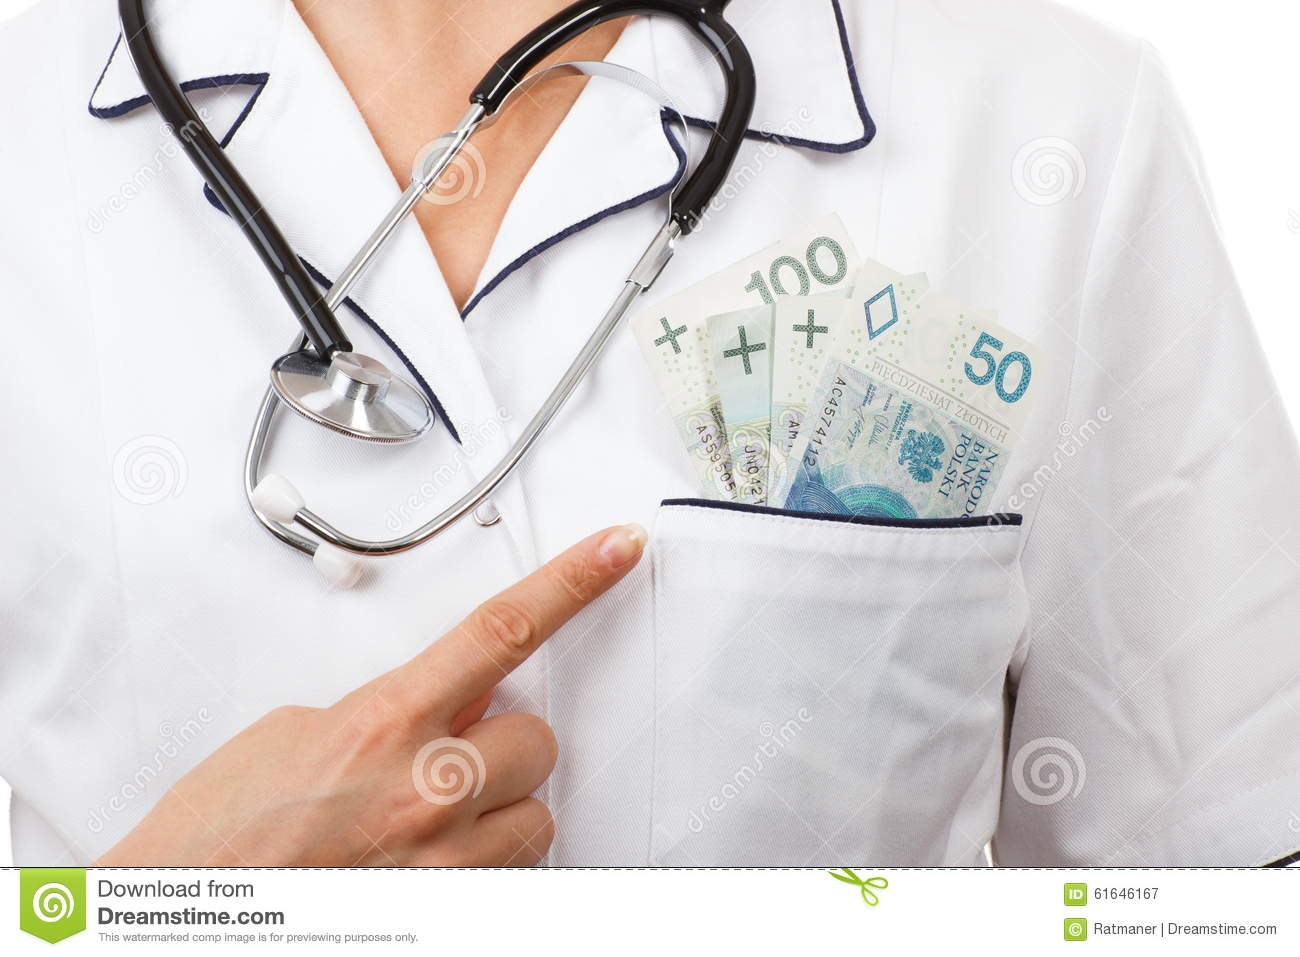 White apron health - Woman Doctor With Stethoscope Showing Polish Currency Money In Apron Pocket Corruption Or Bribe Concept